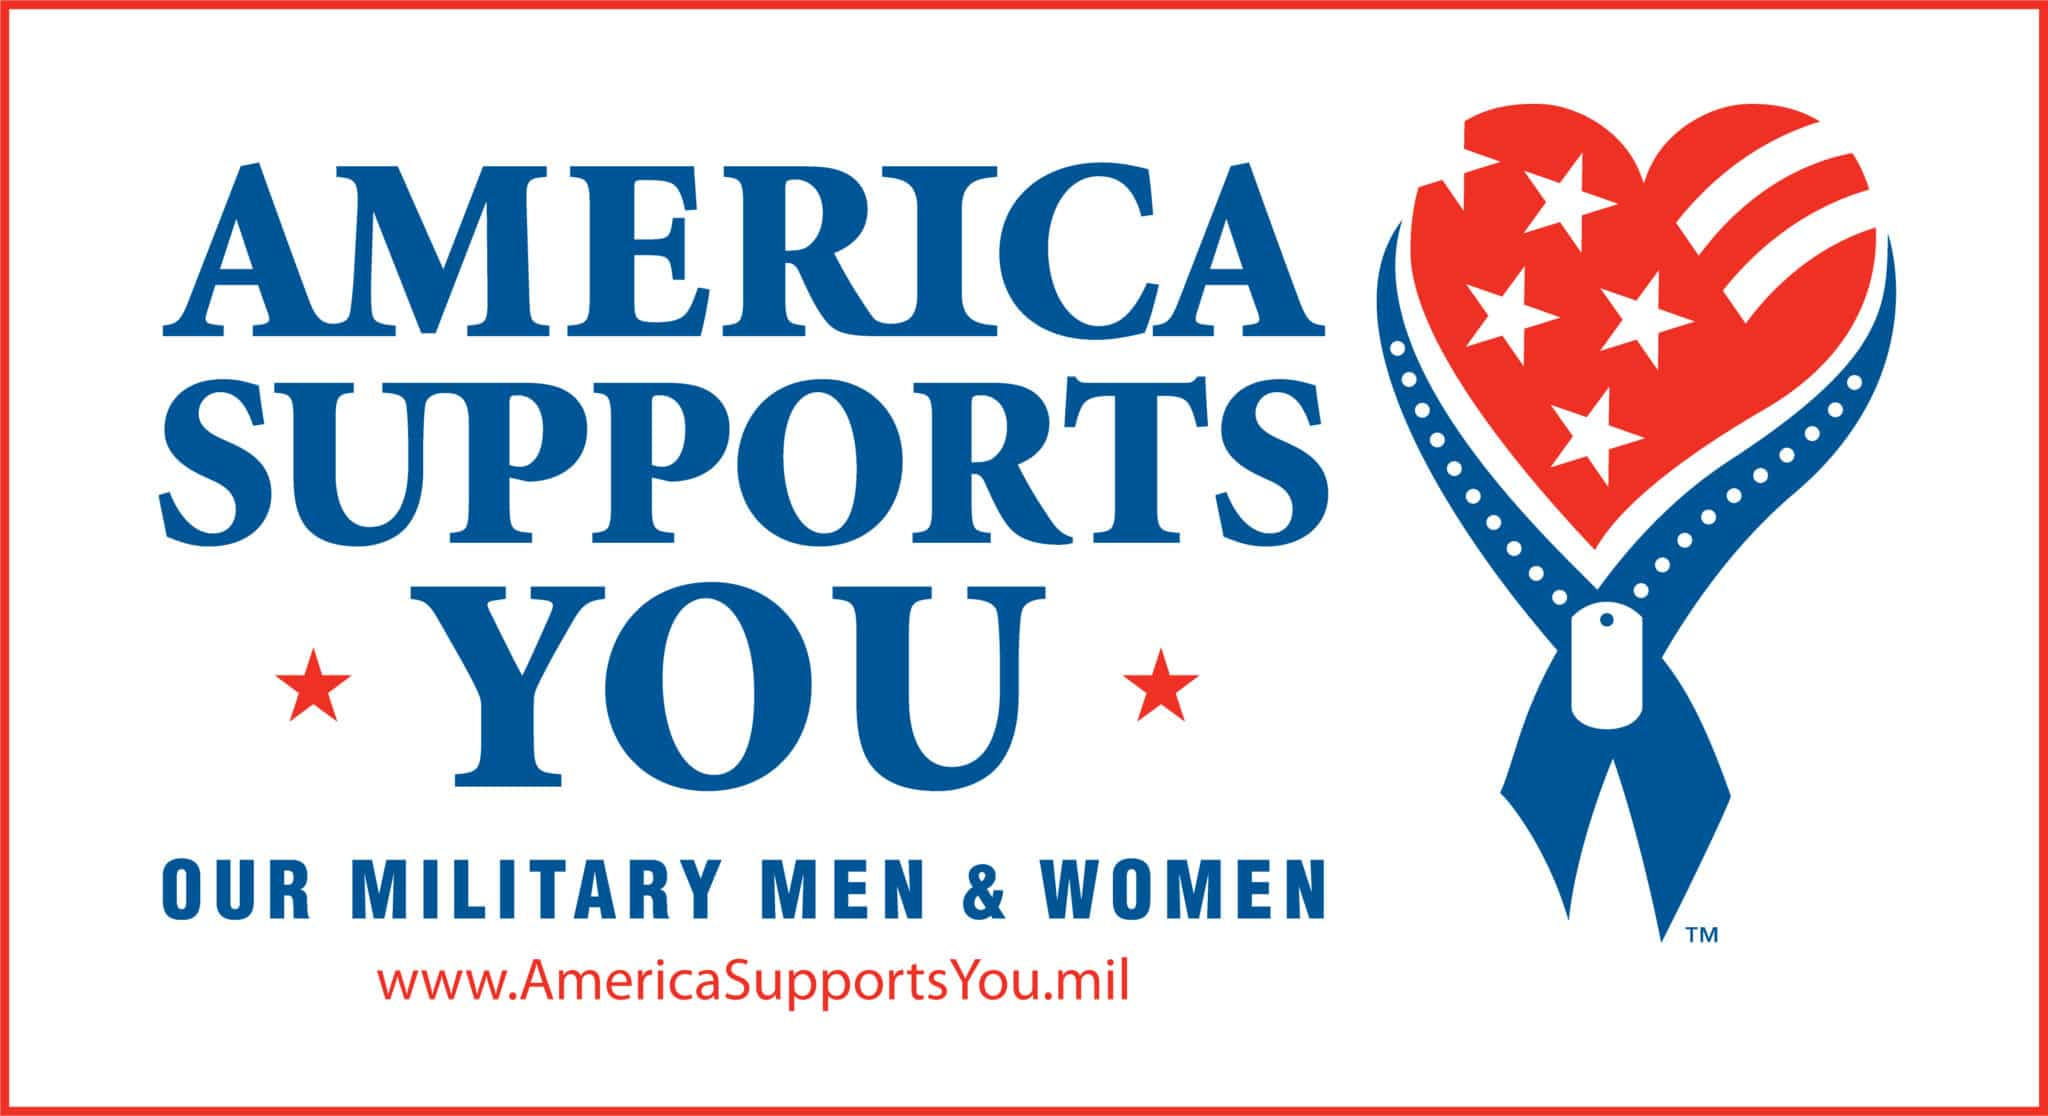 America Supports You